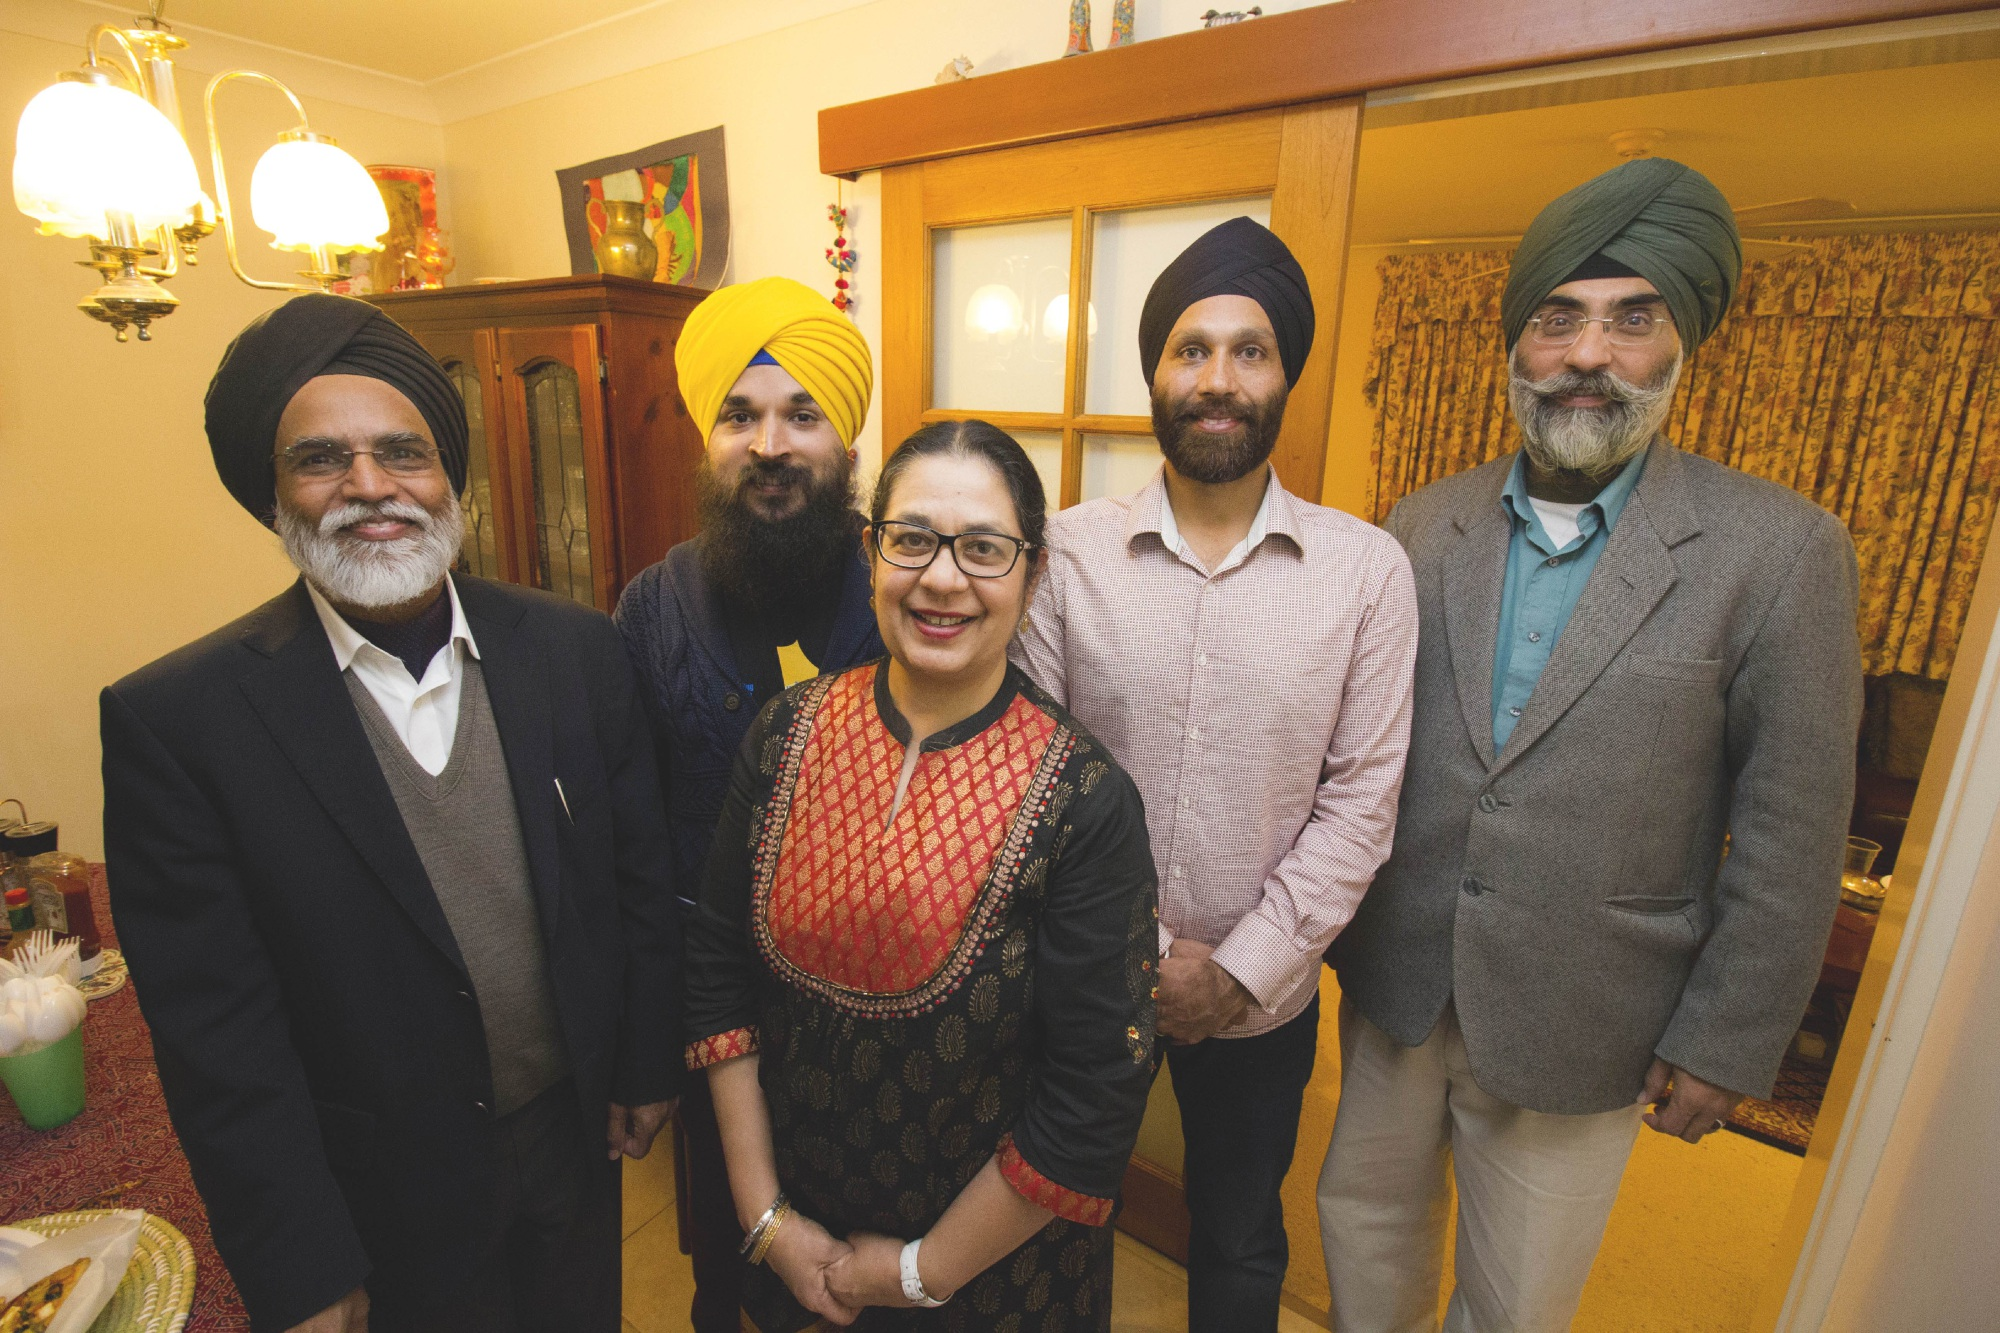 Amarjit Singh Pabla, Harjit Singh, Kuljit Kaur Jassal, Kuldeep Singh and Tarun Preet Singh are among the core group spearheading the Sikh Heritage Trail.